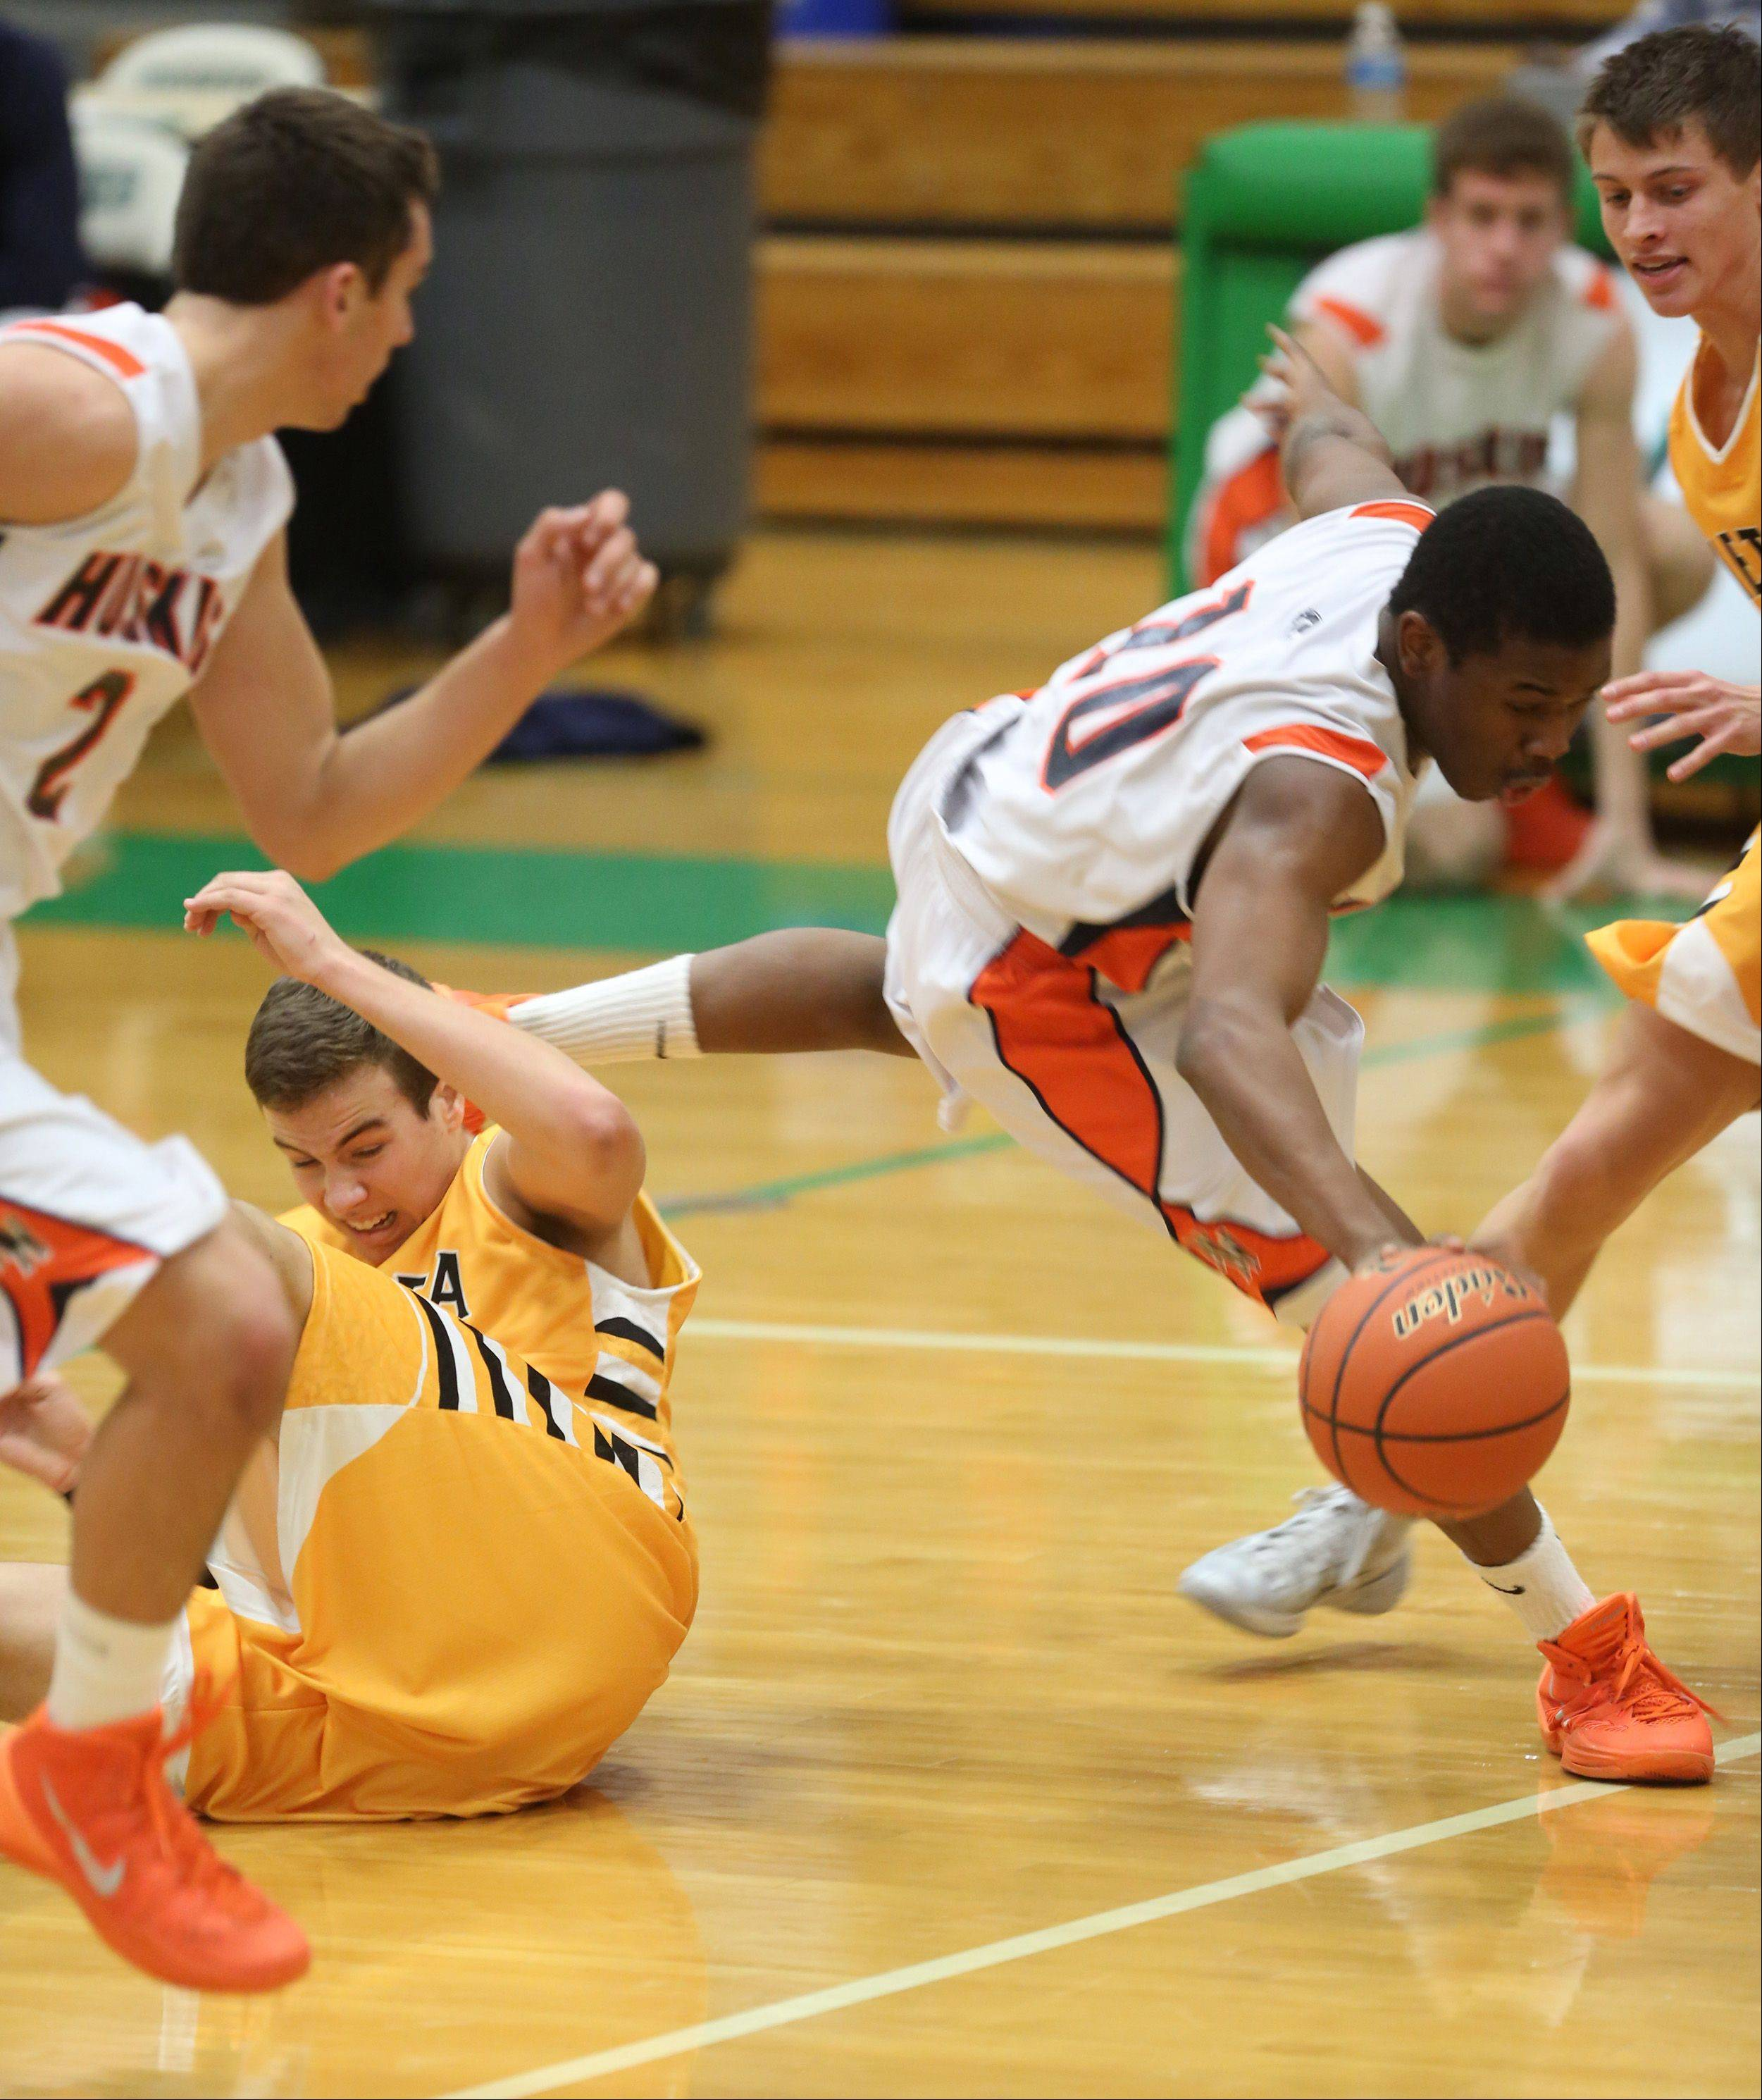 Naperville North's Jelani McClain Jr. drives past the Metea Valley defense during Thursday's Jack Tosh Holiday Classic basketball tournament.